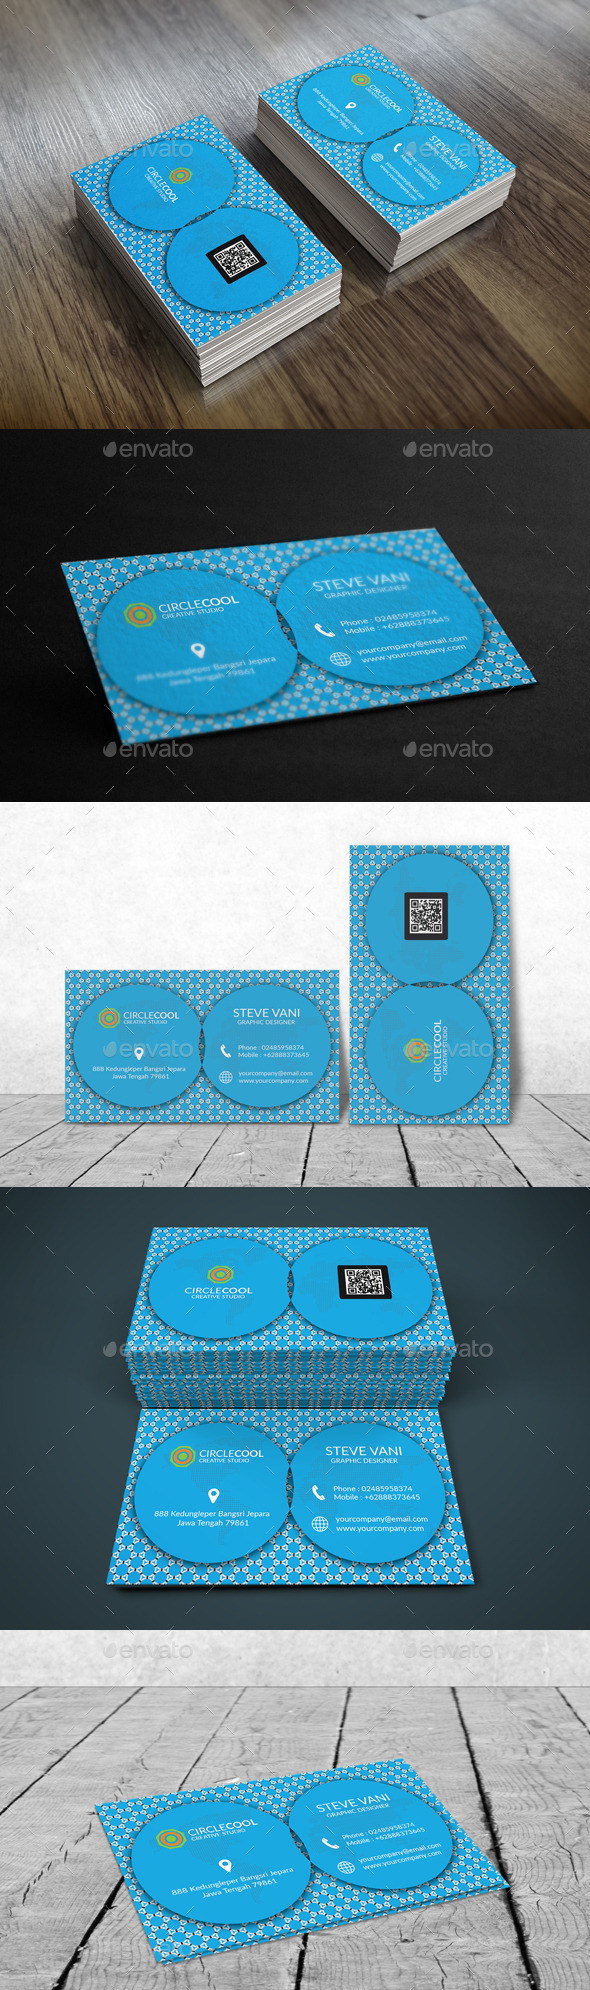 GraphicRiver Creativecircle Business Card V1 11556104